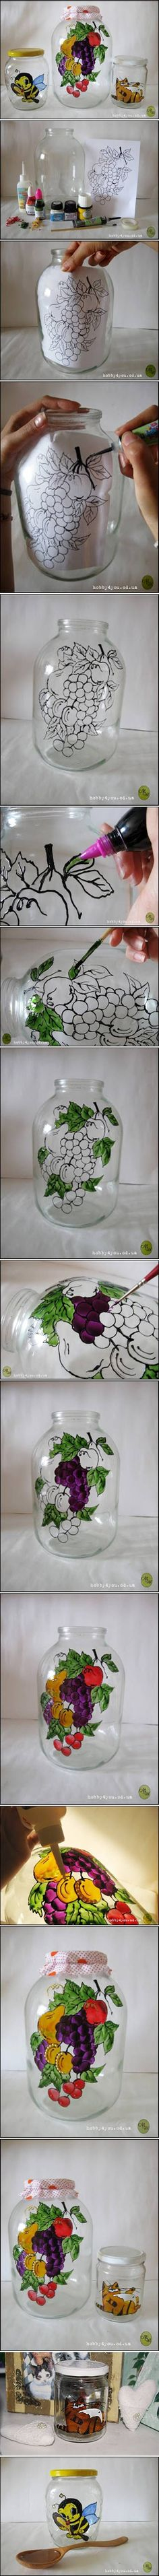 DIY Jar Painting - innovative concept!